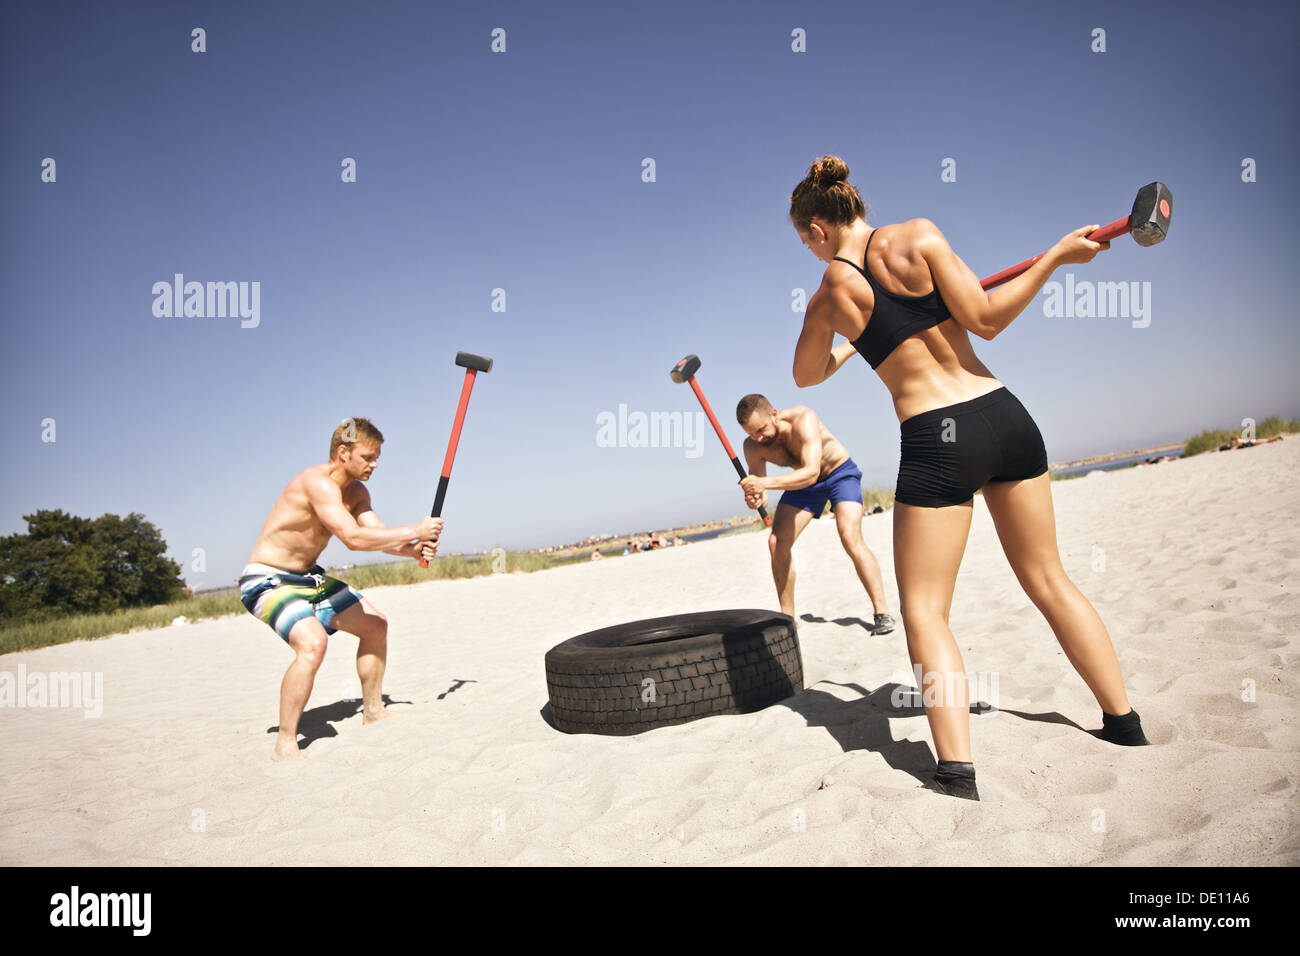 Three strong athletes doing hammer strike on a truck tire during crossfit exercise outside on beach Stock Photo